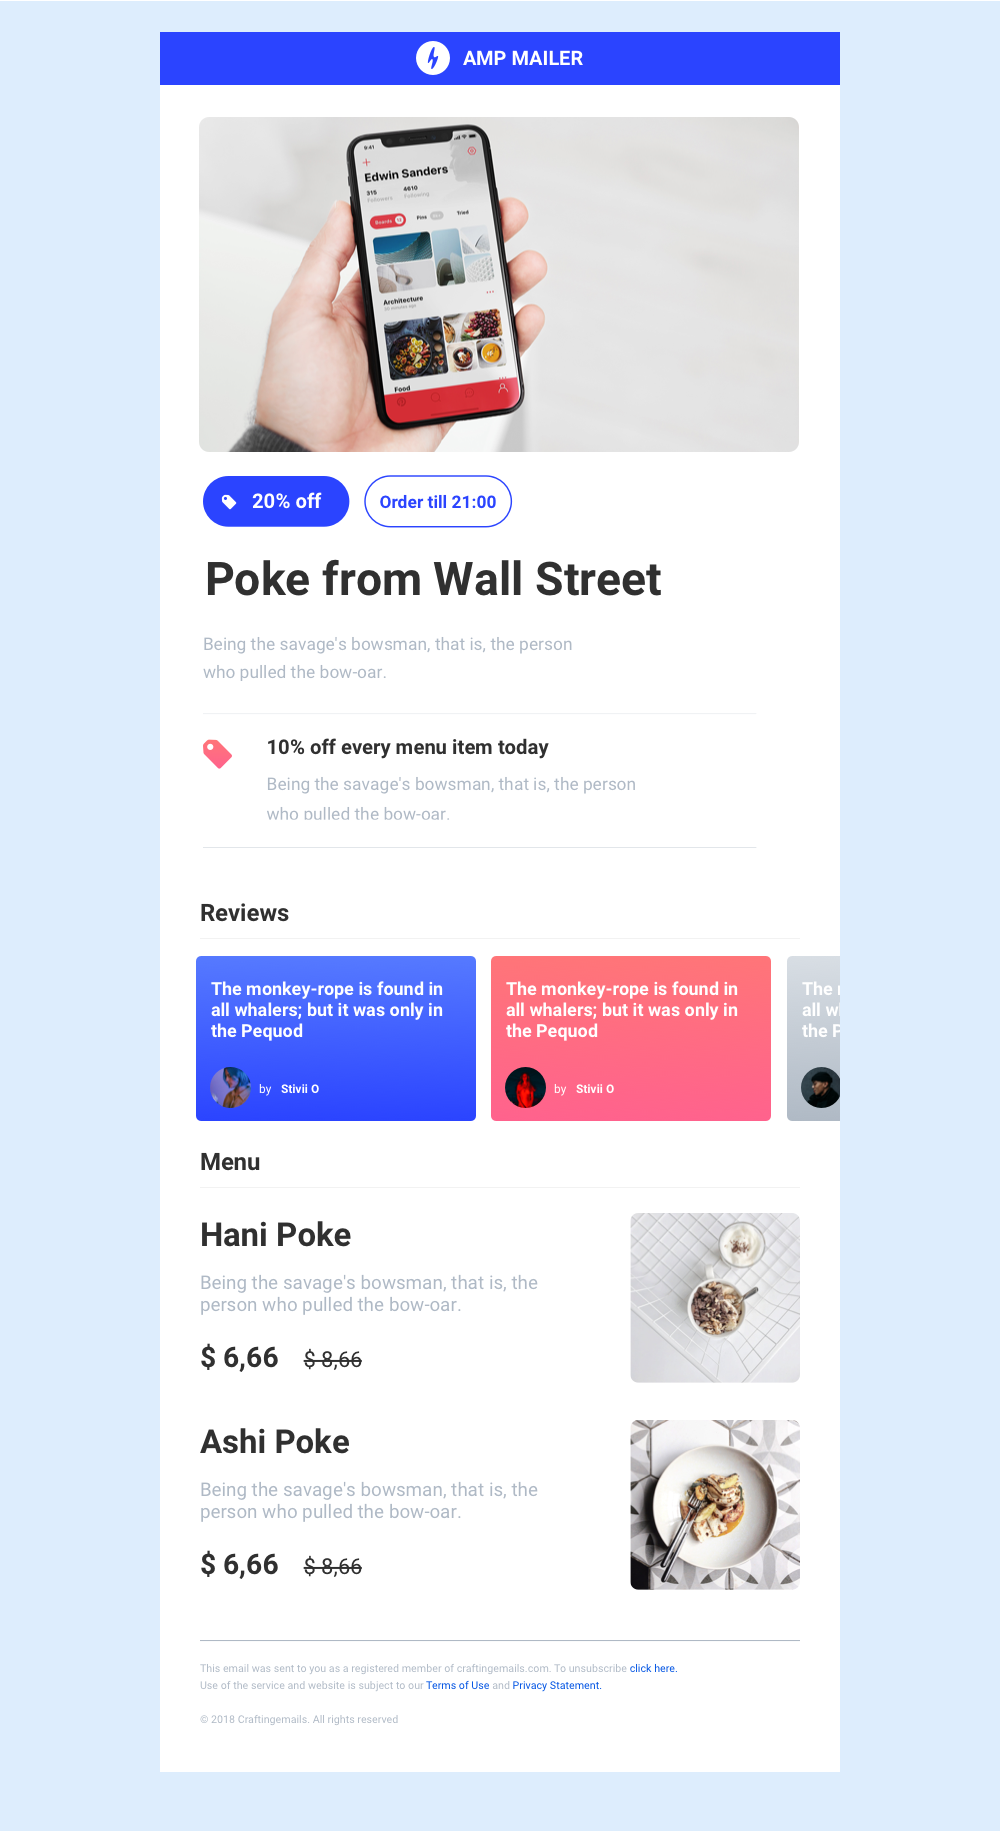 AMP newsletter emails template first steps  - Iggy - Medium